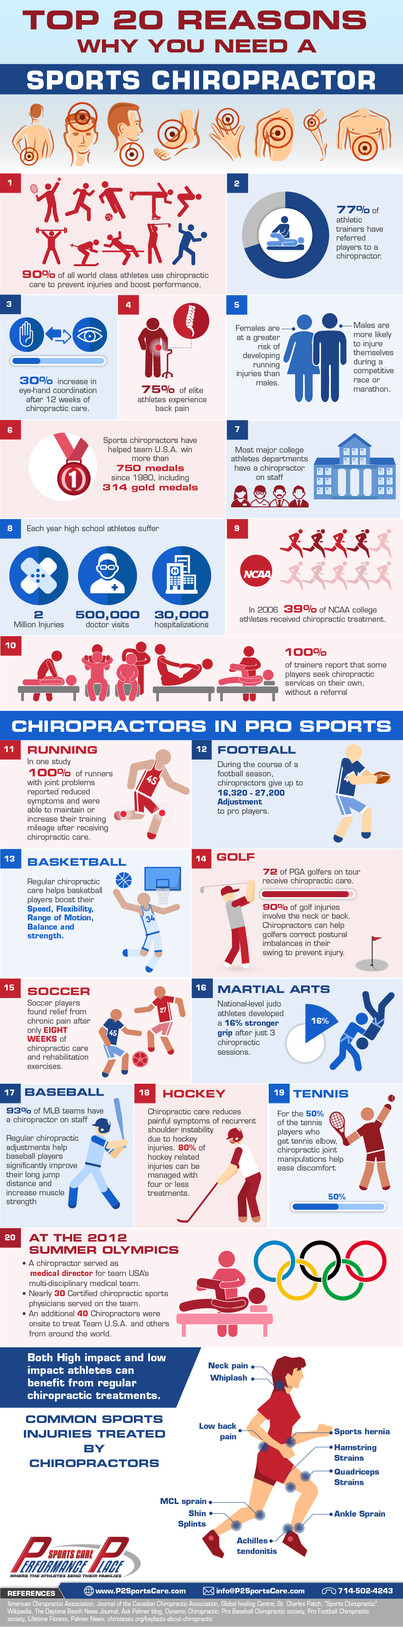 Top 20 Reasons Why You Need a Sports Chiropractor